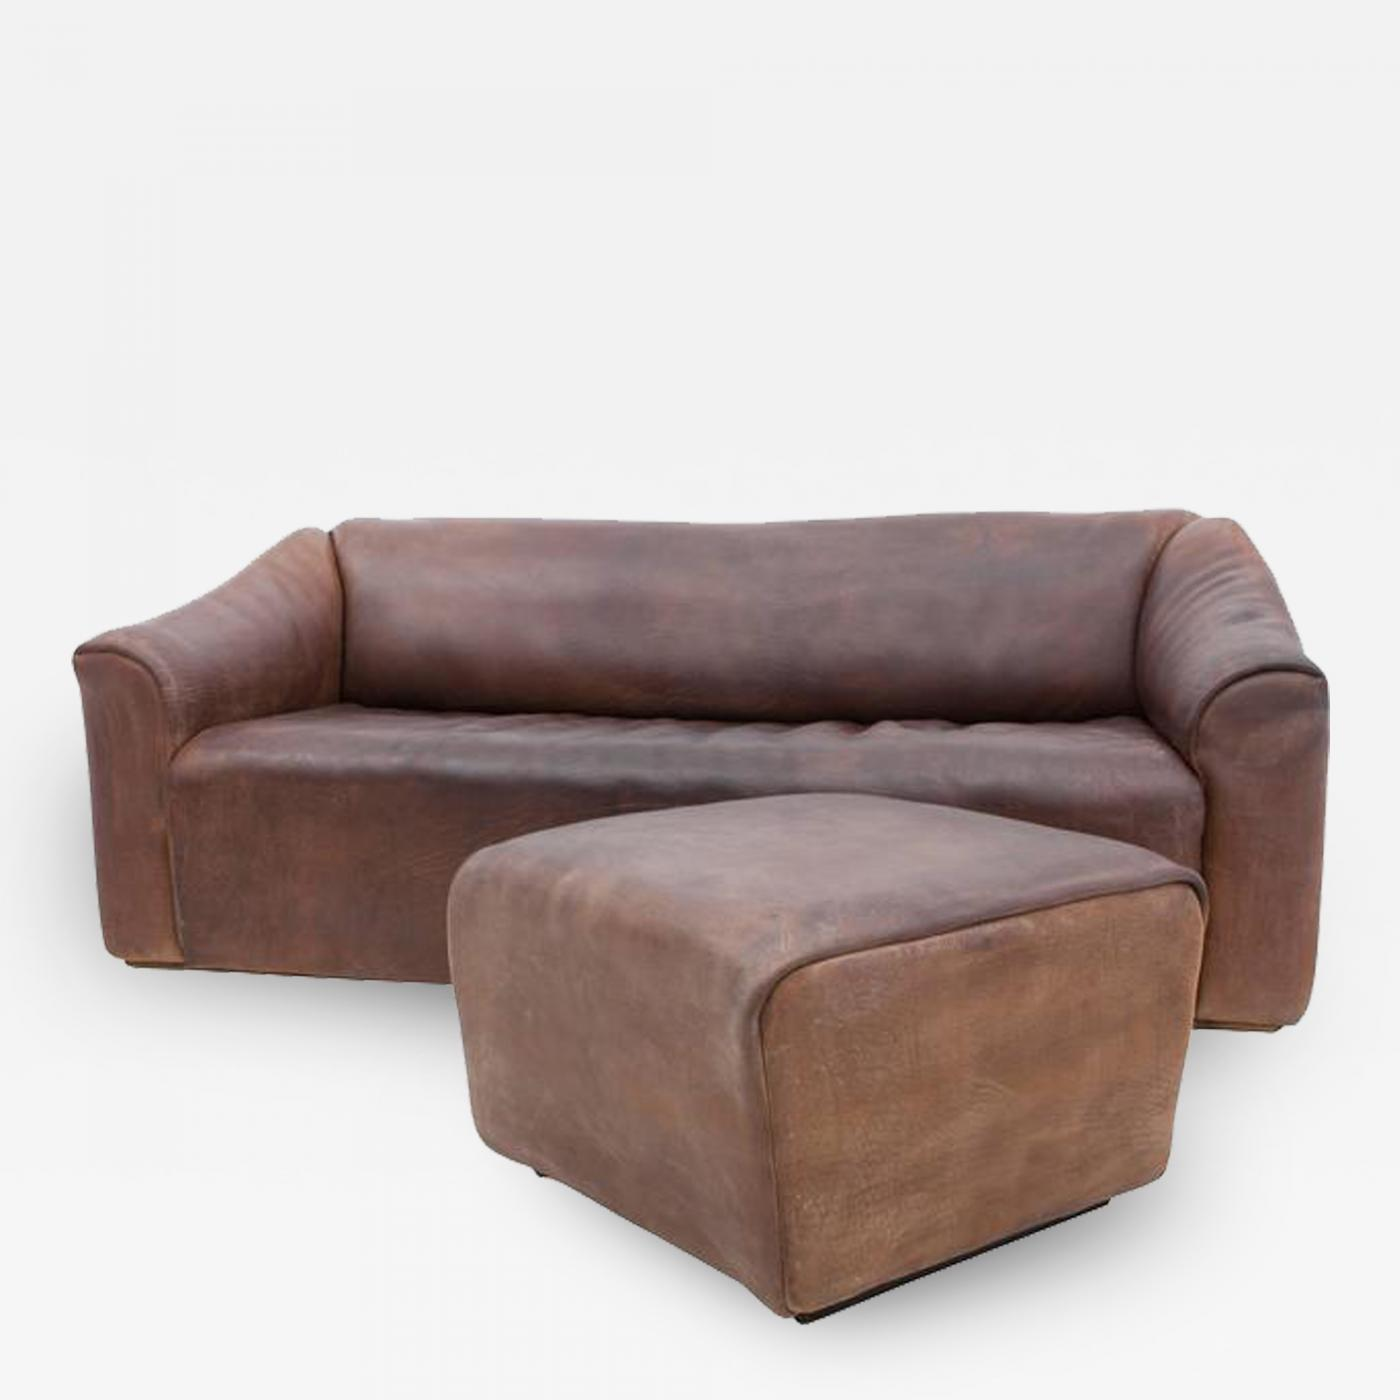 de Sede - De Sede DS 47 Leather Sofa with Ottoman